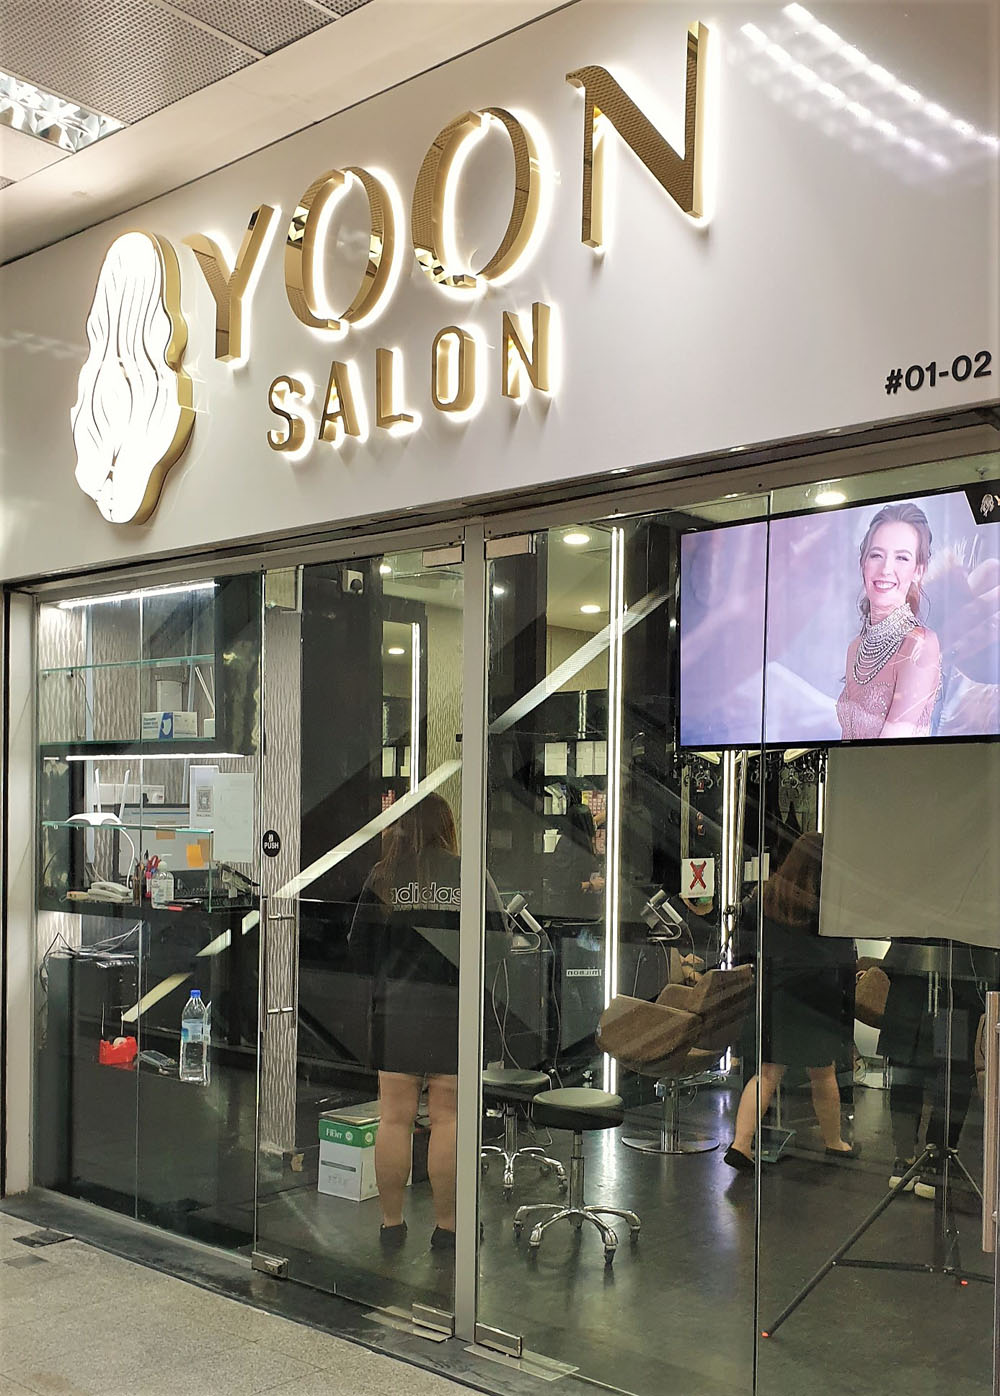 Yoon Salon Midpoint Orchard